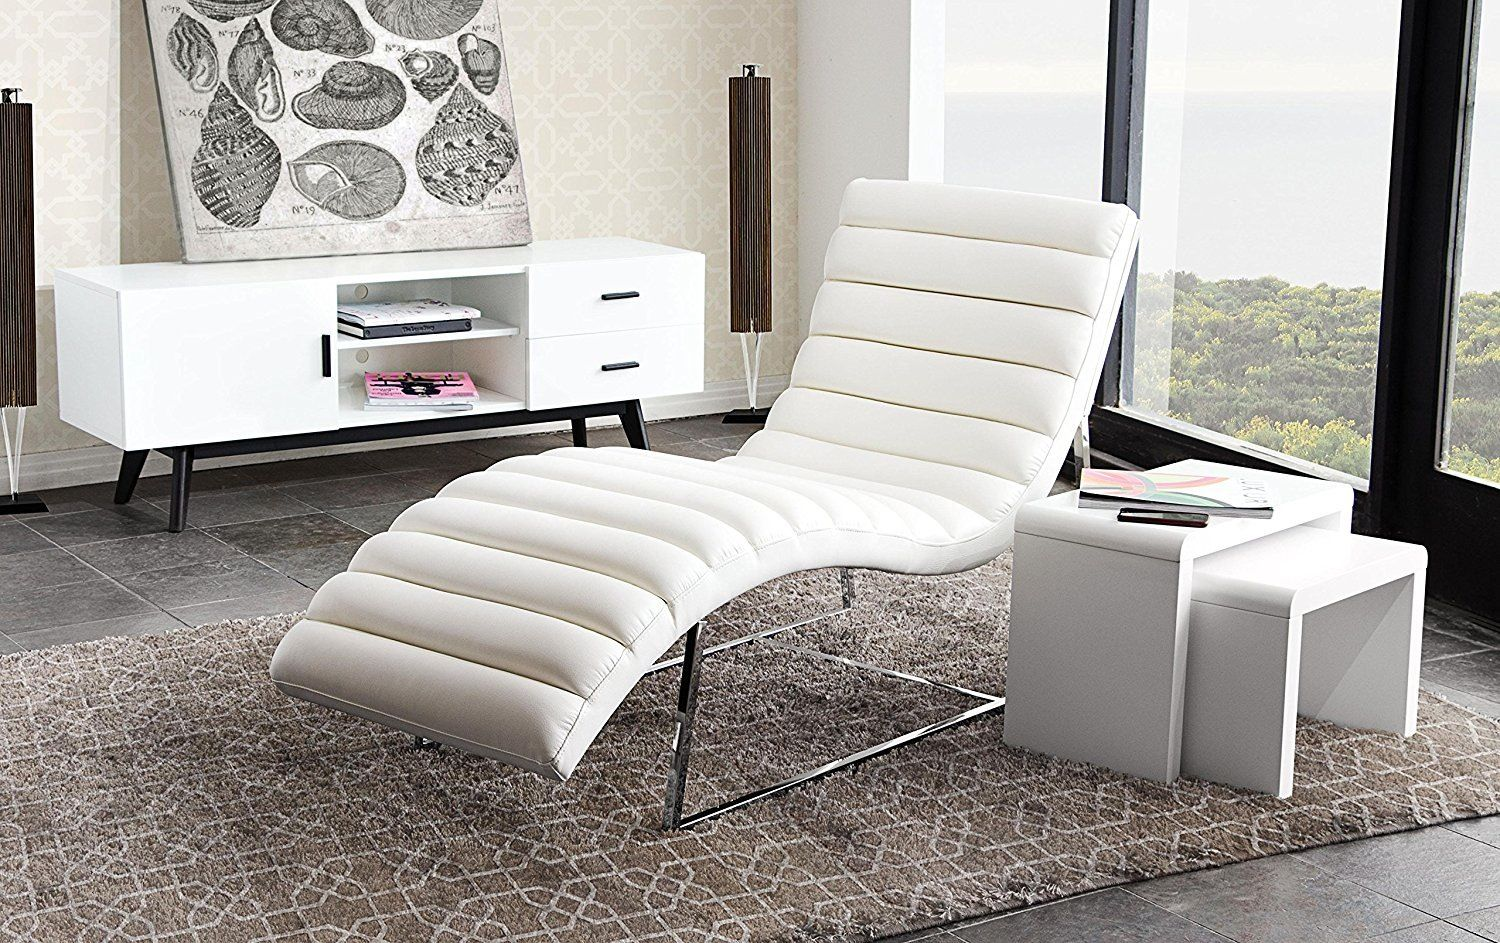 9 Of The Best Looking Modern Chaise Lounges Modern Chaise Lounge